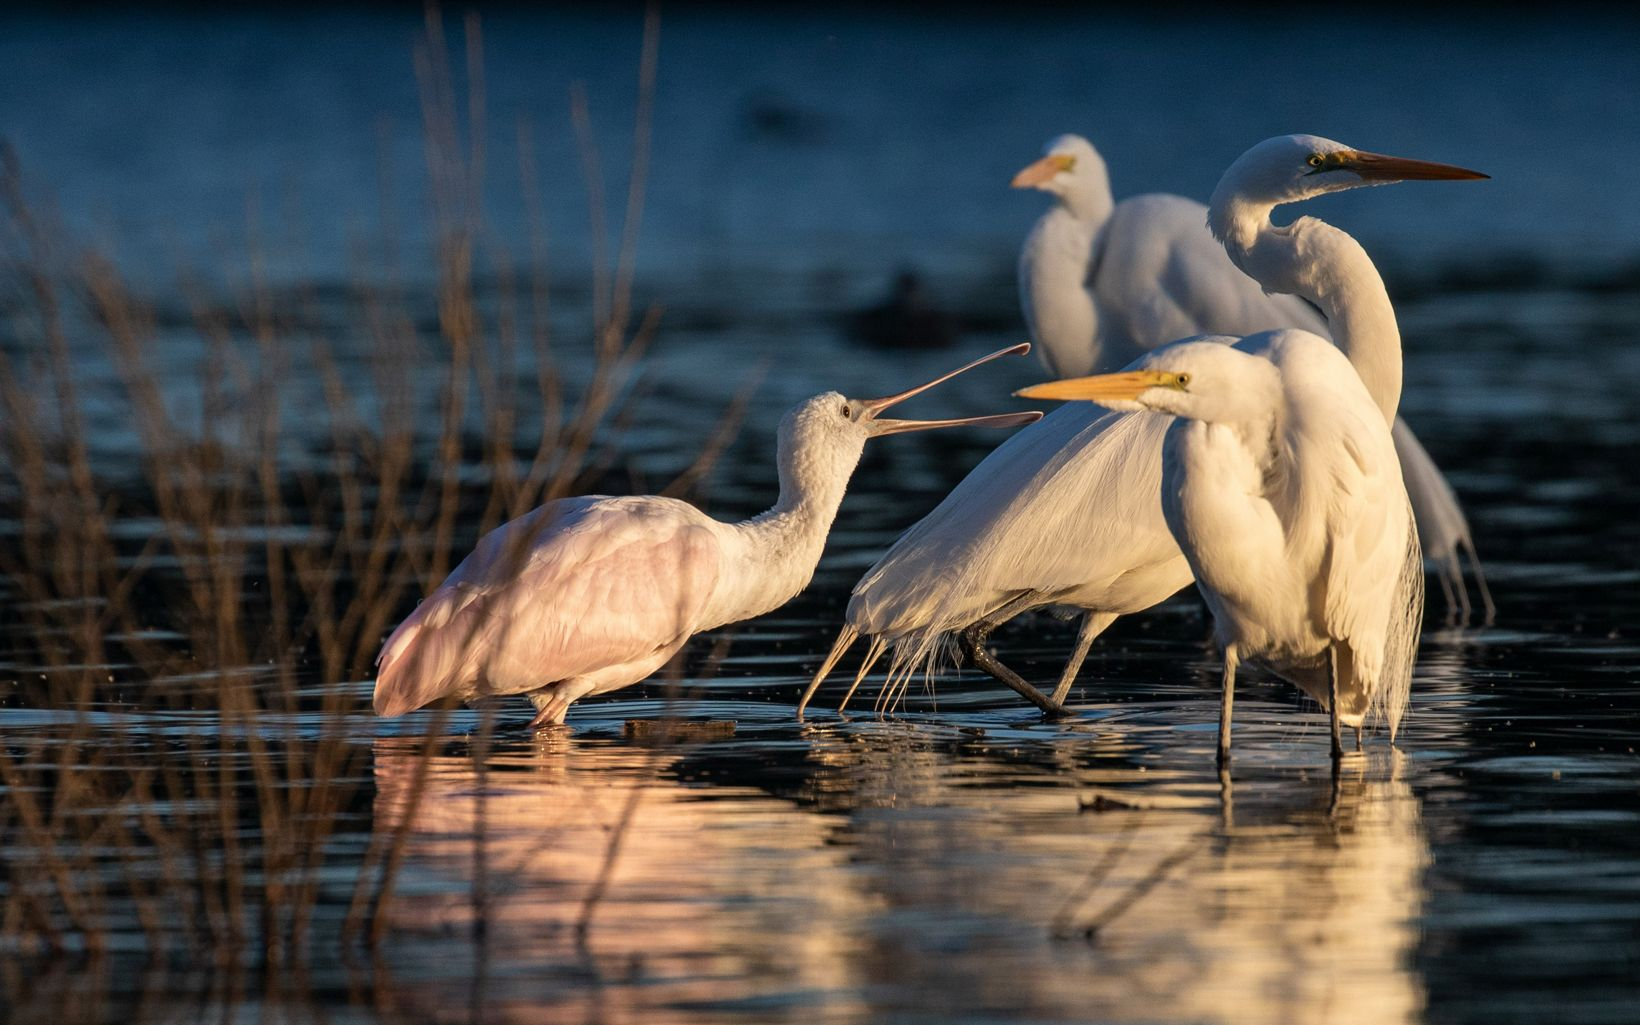 A group of white wading birds standing in water. One bird is lounging at another with its beak.